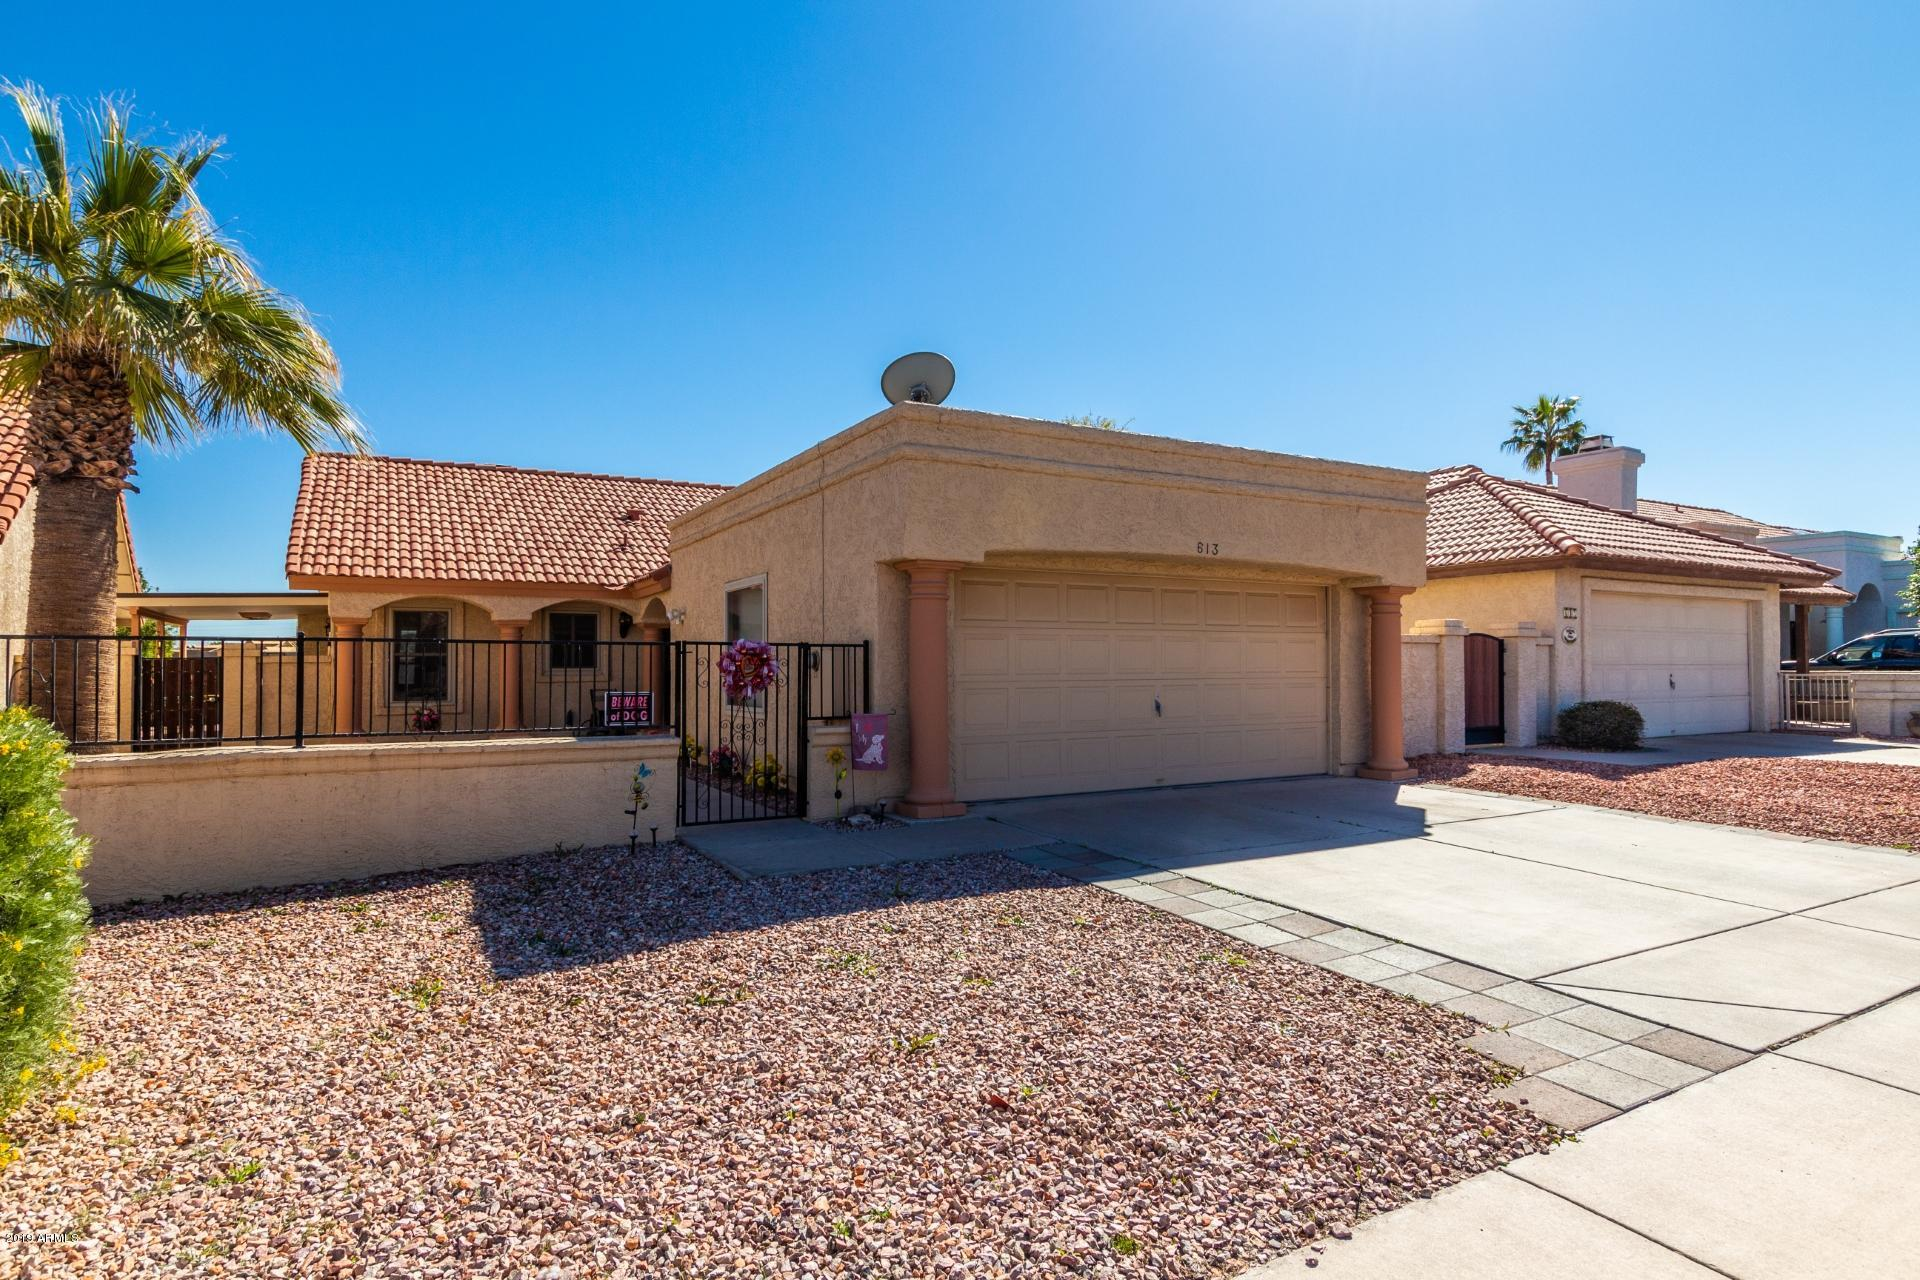 Photo of 613 S DANYELL Drive, Chandler, AZ 85225